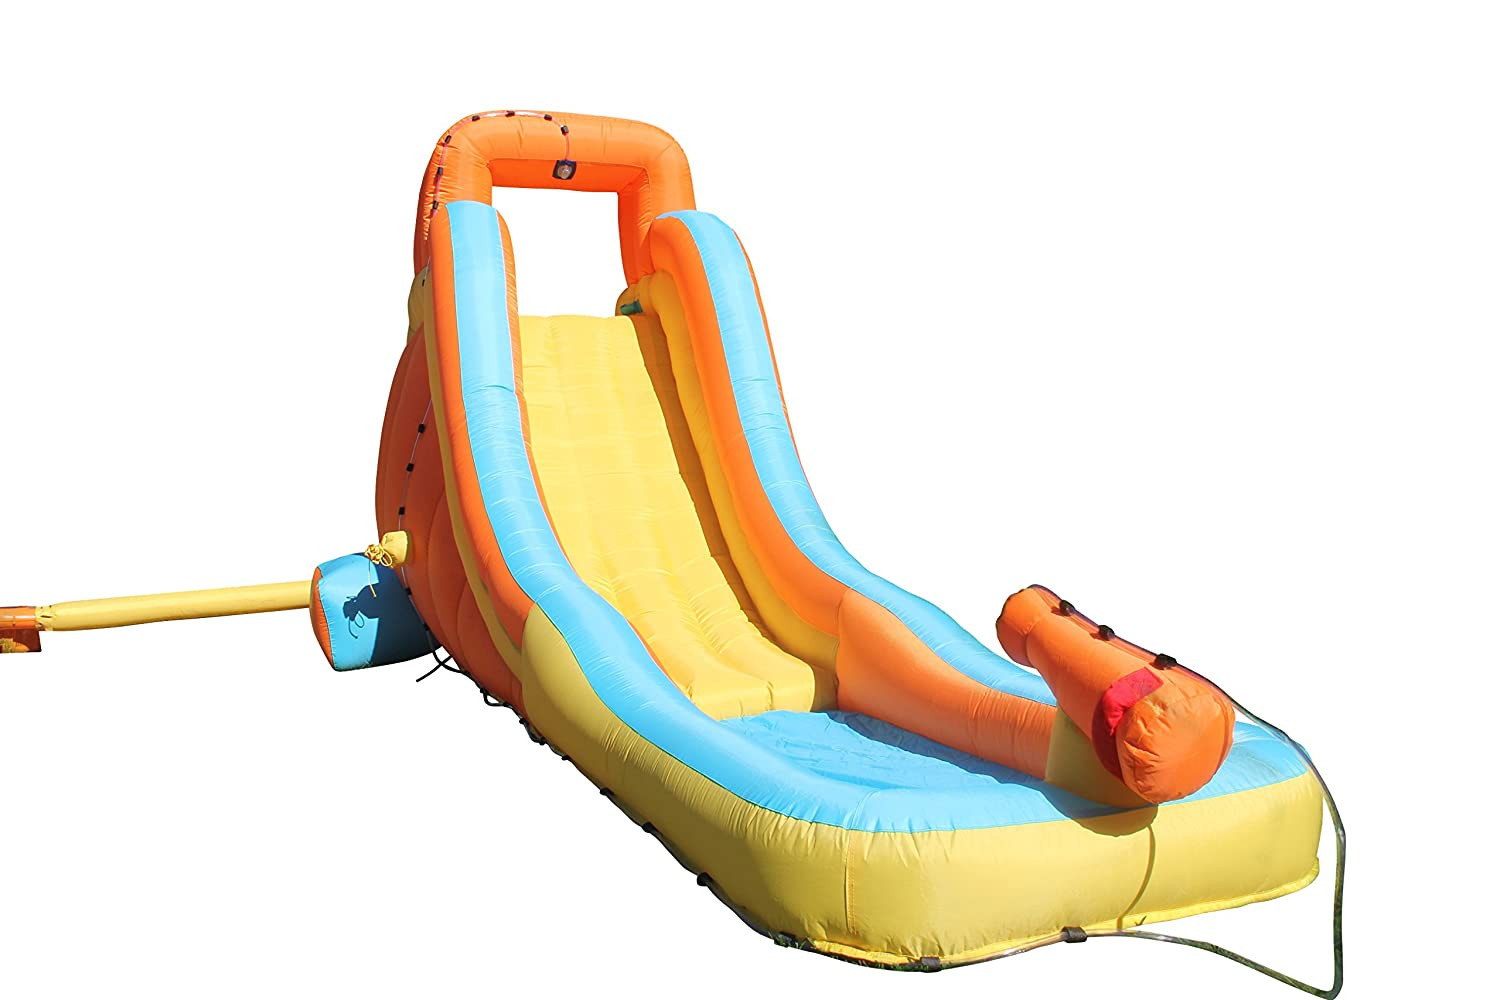 Top 7 Best Water Slide Pools Inflatable Reviews in 2021 11